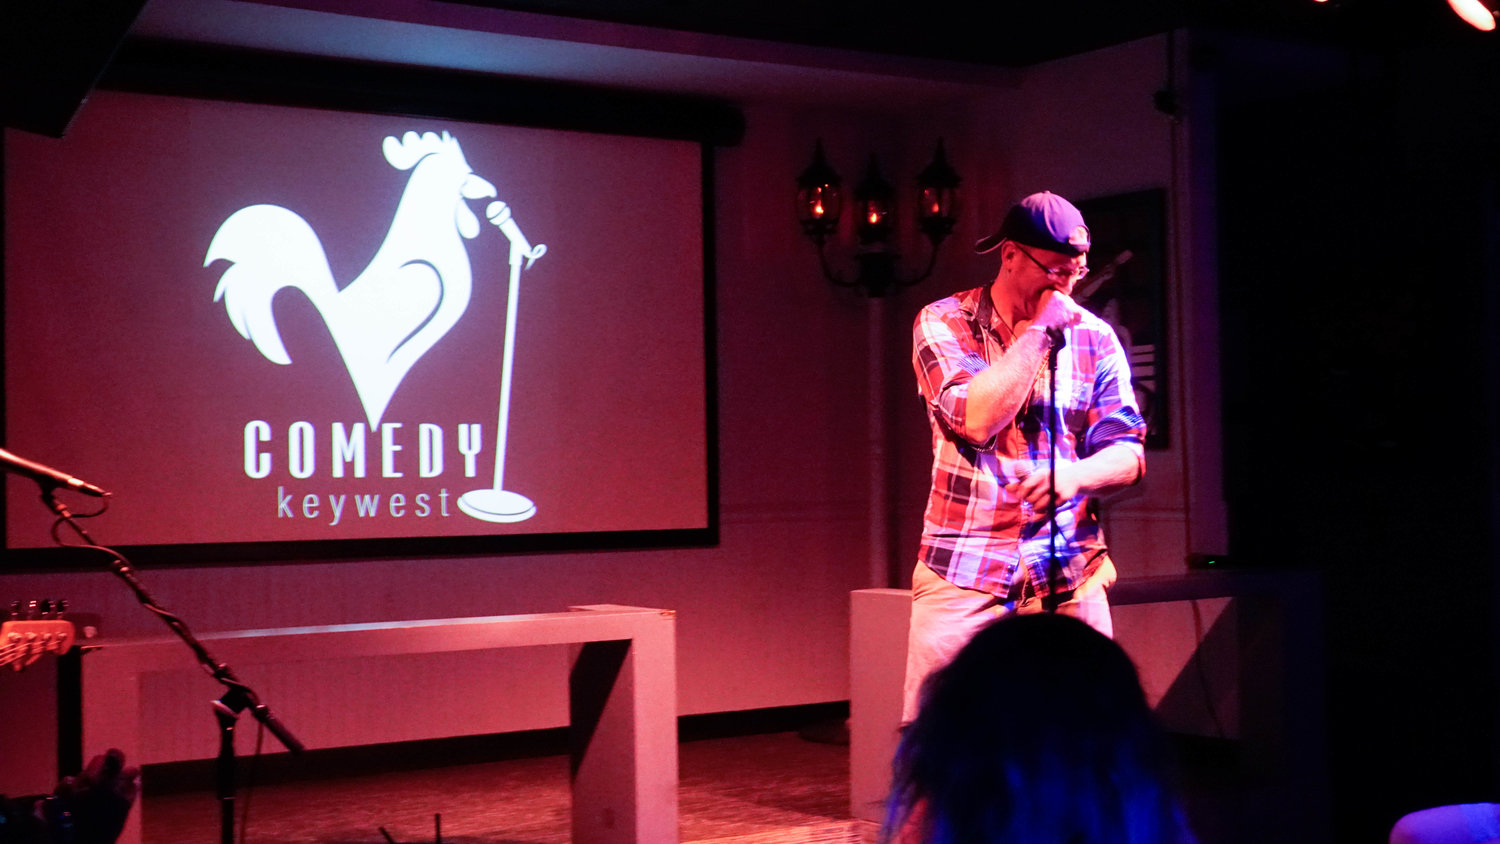 Derek Hoffman and Comedy Key West